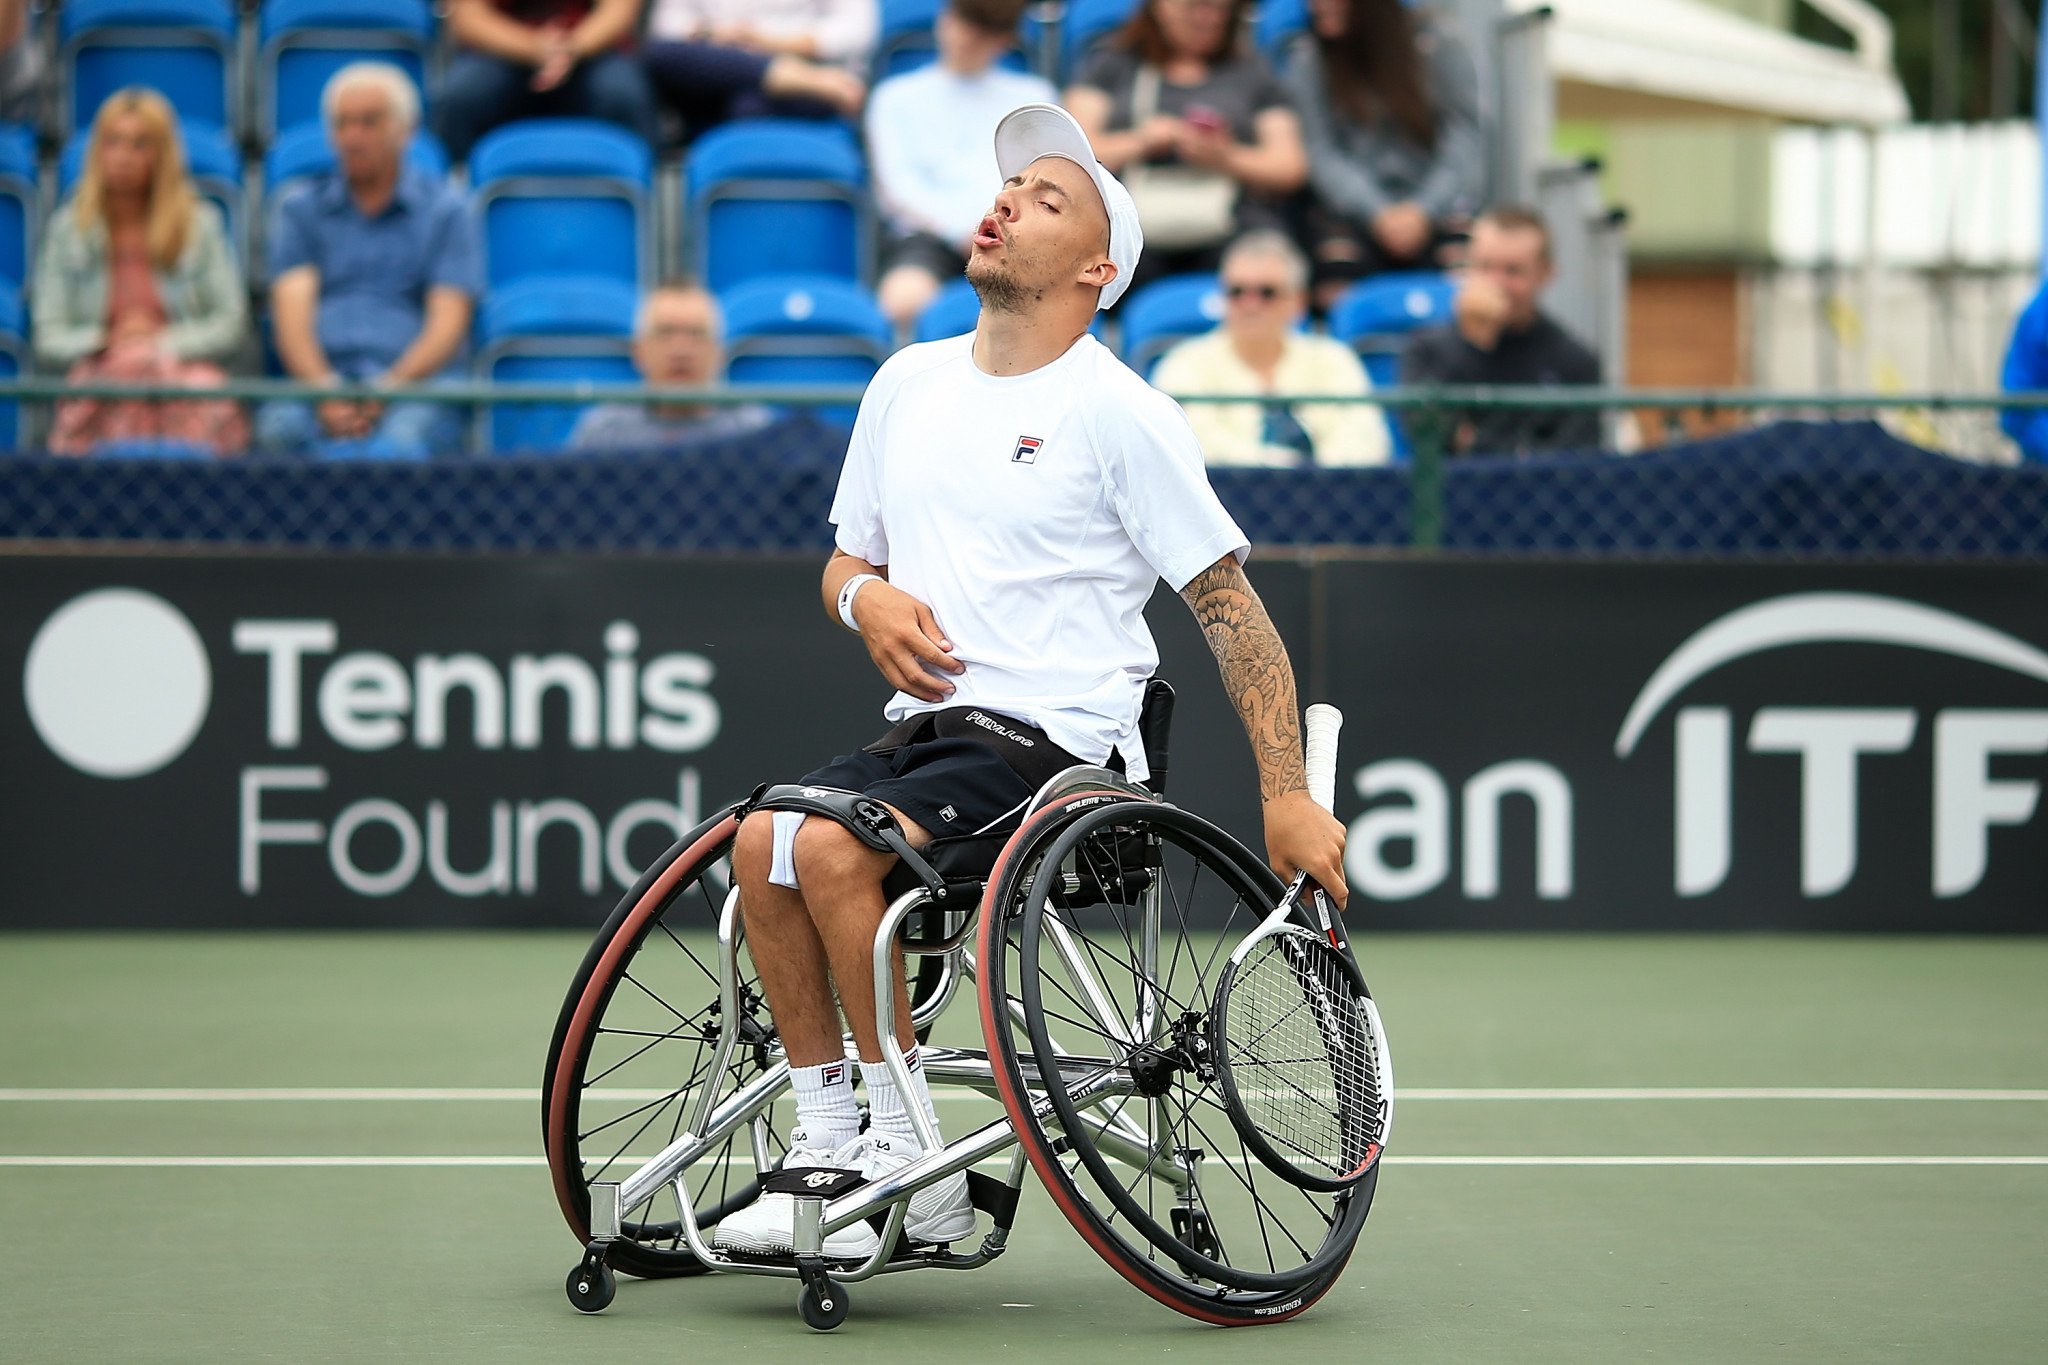 Home favourite loses final at British Open Wheelchair Tennis Championships